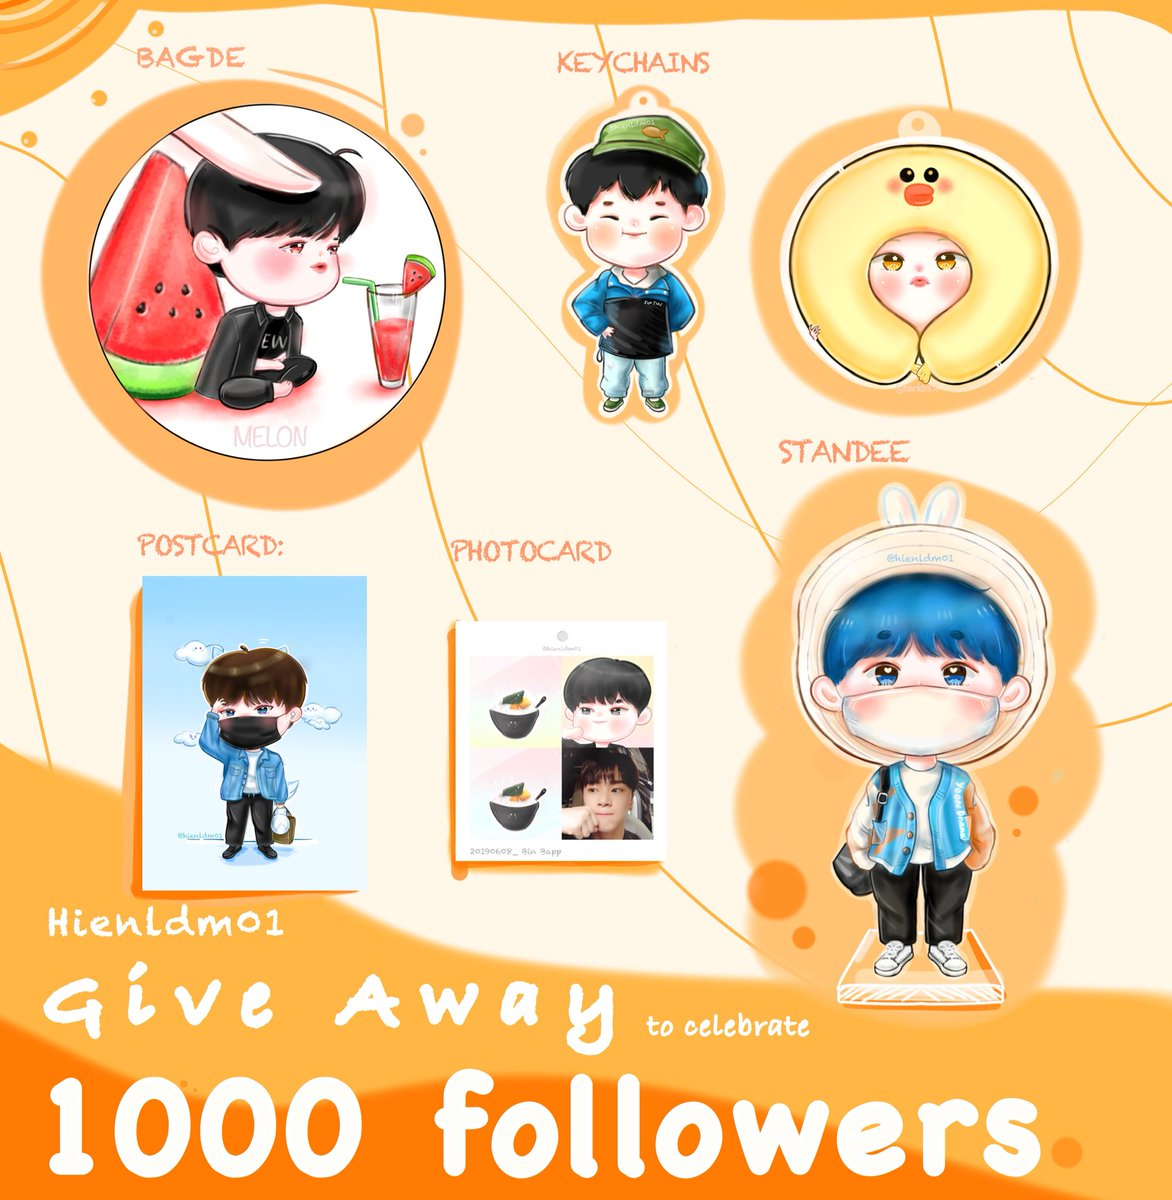 1000 FOLLOWER SPECIAL GIVEAWAY Thank you for supporting me, Aroha is a great motivation for me. I will give gifts based on lottery results 1 Winners!  Rules -just RETWEET & LIKE* *Results will be announced on July 7* THANK YOU SO MUCH #hienldm01GA<br>http://pic.twitter.com/xYhRt5HITb